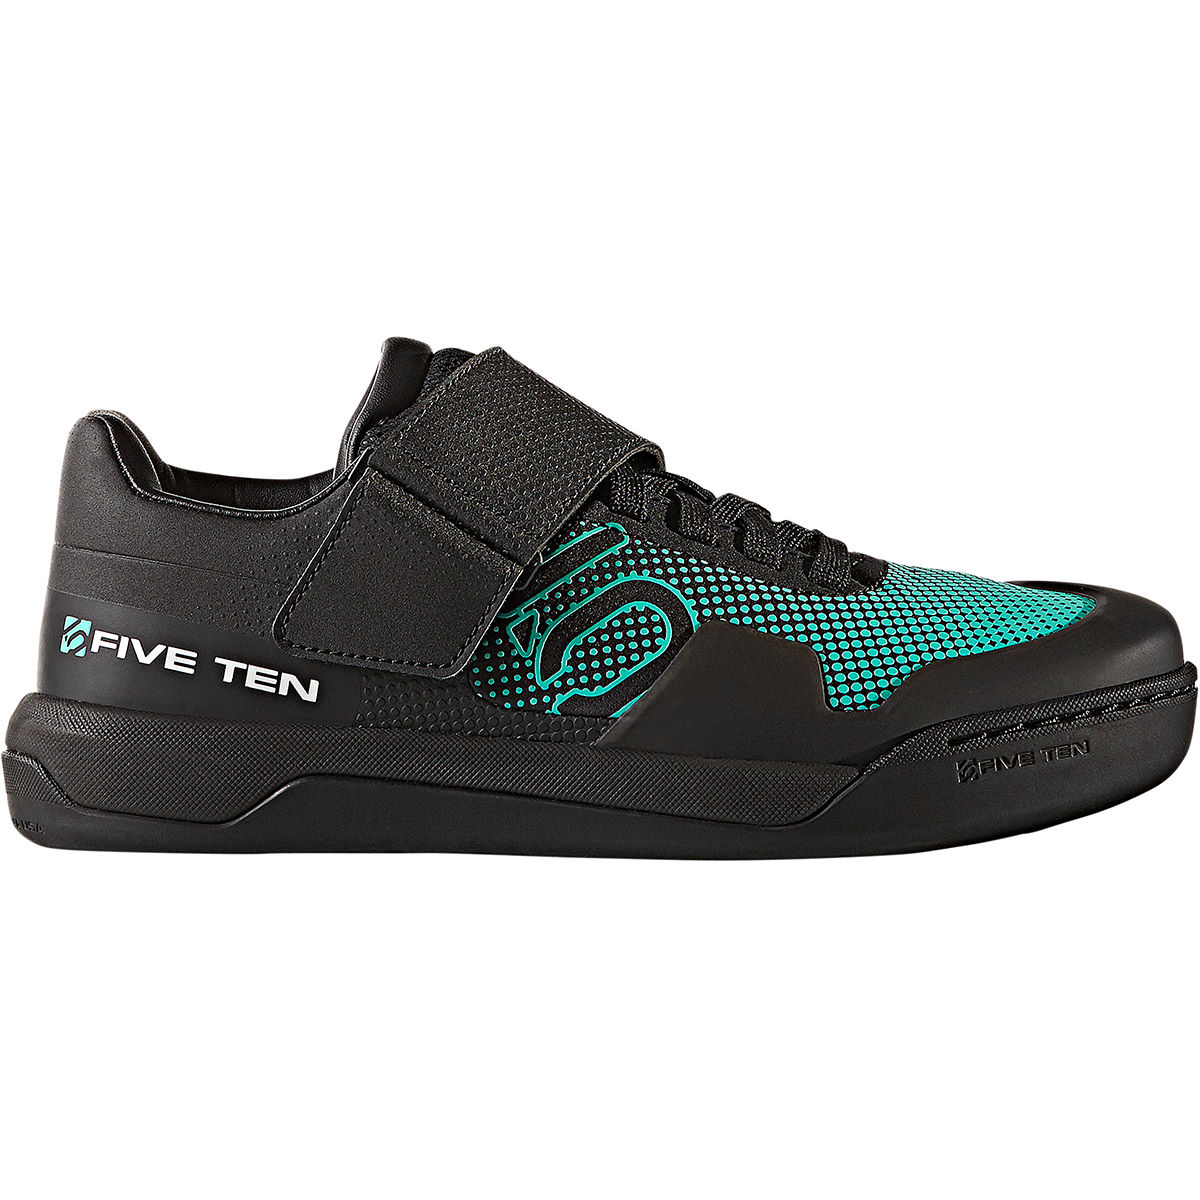 Chaussures VTT Femme Five Ten Hellcat Pro - EU 42 Black/Mint